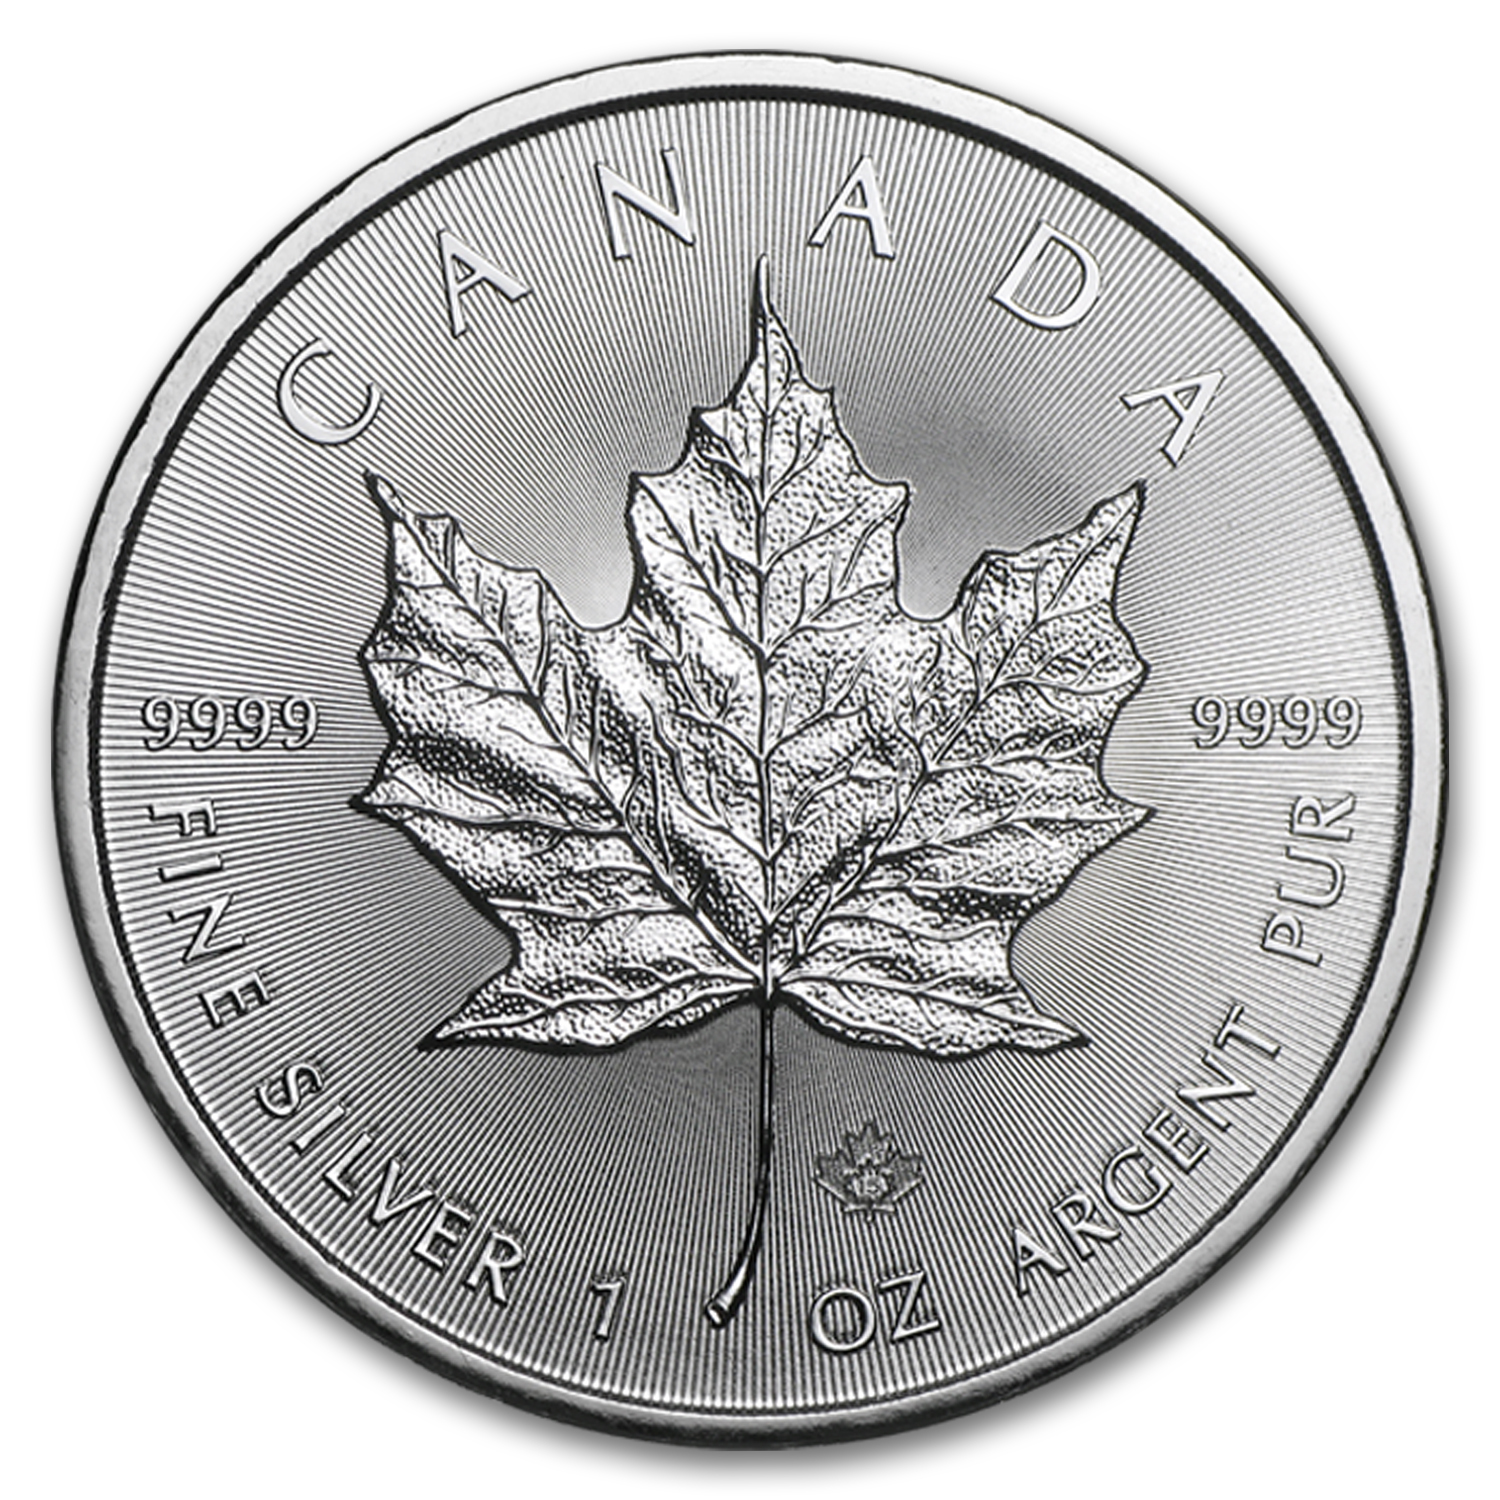 2015 Canada 1 oz Silver Maple Leaf (25-Coin MintDirect® Tube)